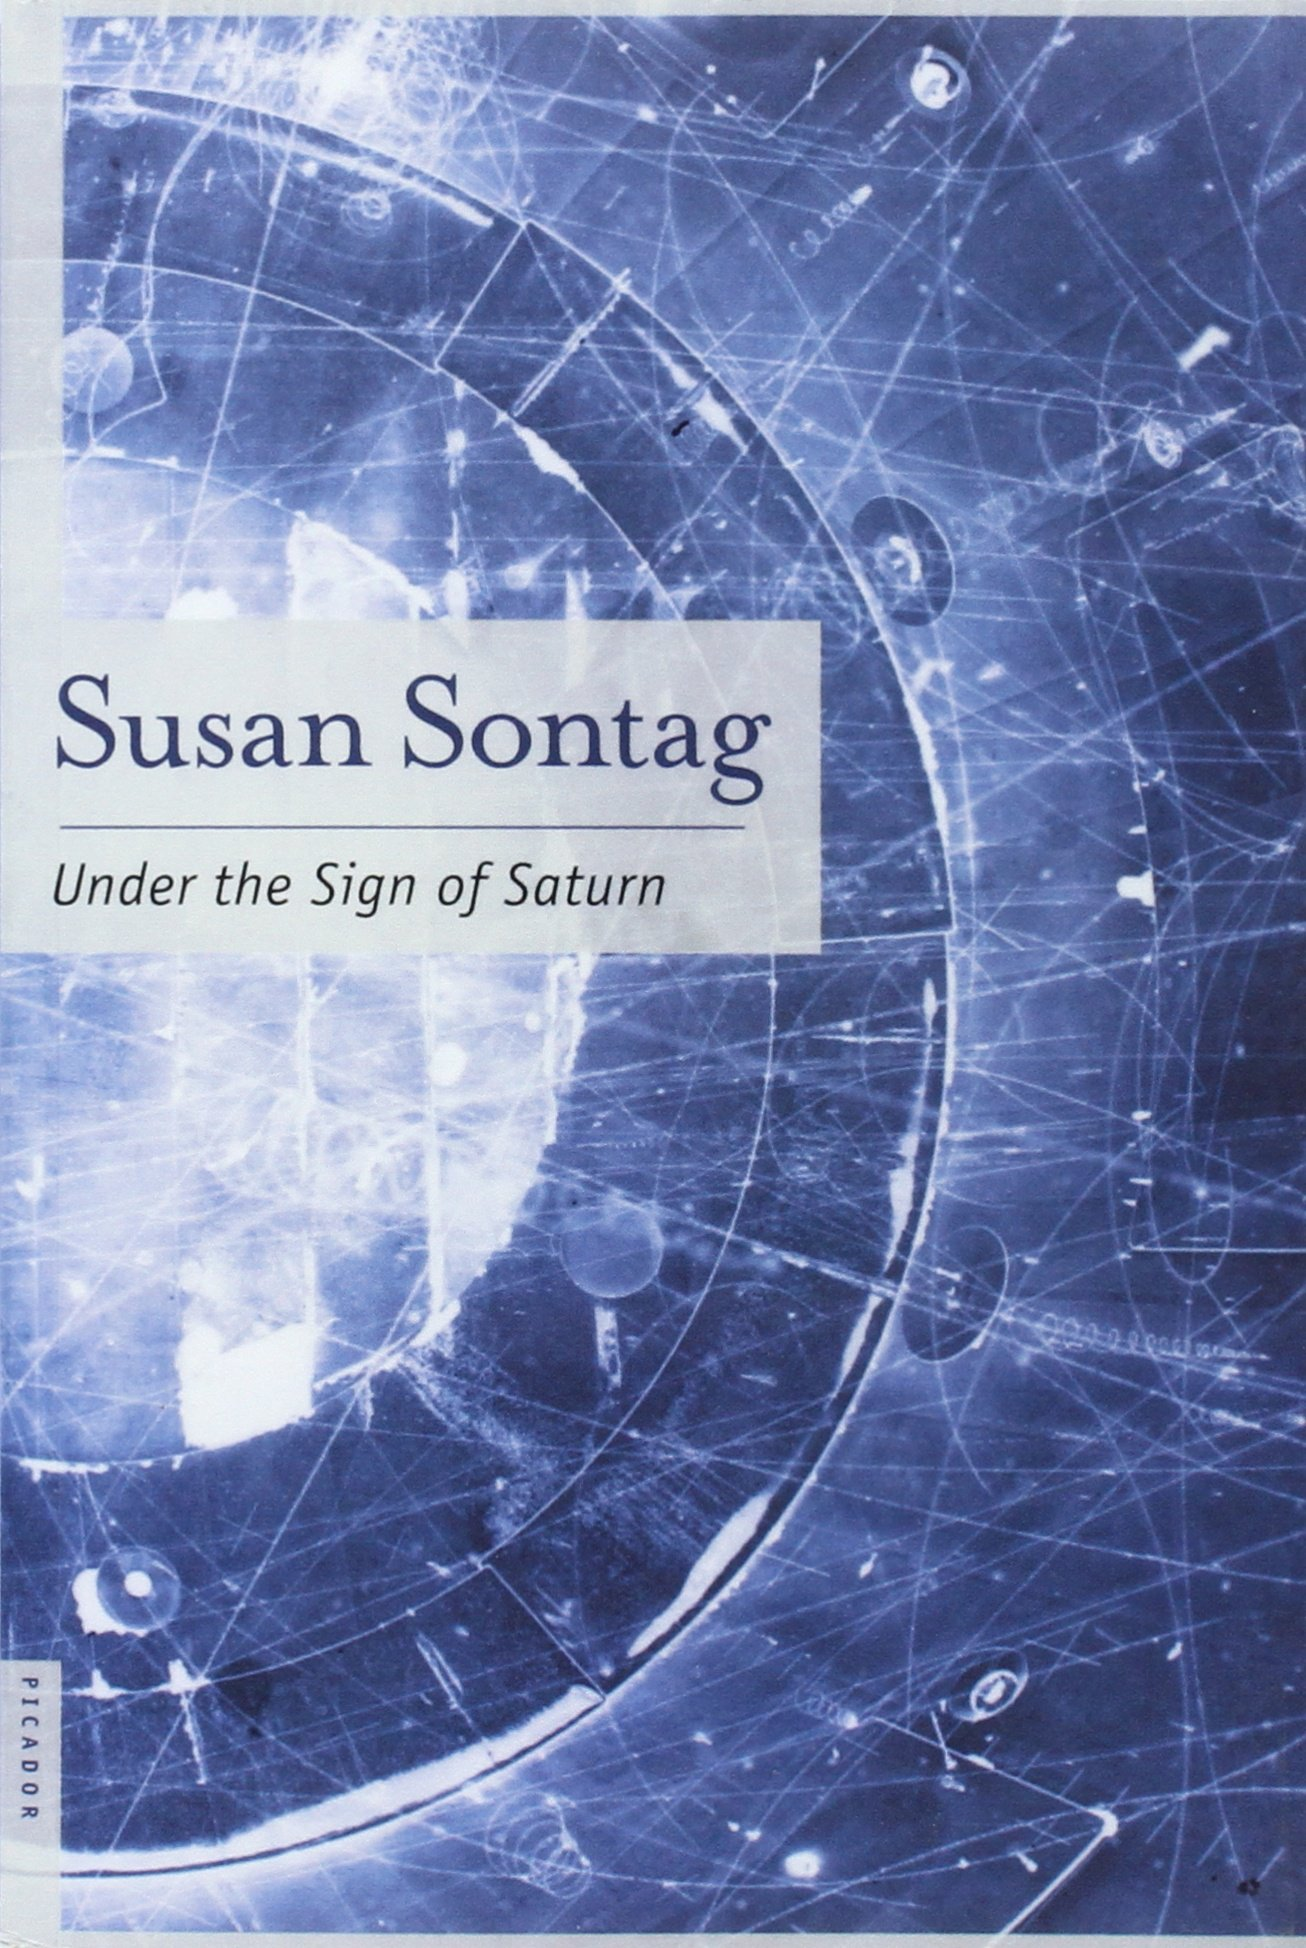 under the sign of saturn essays susan sontag  under the sign of saturn essays susan sontag 9780312420086 com books